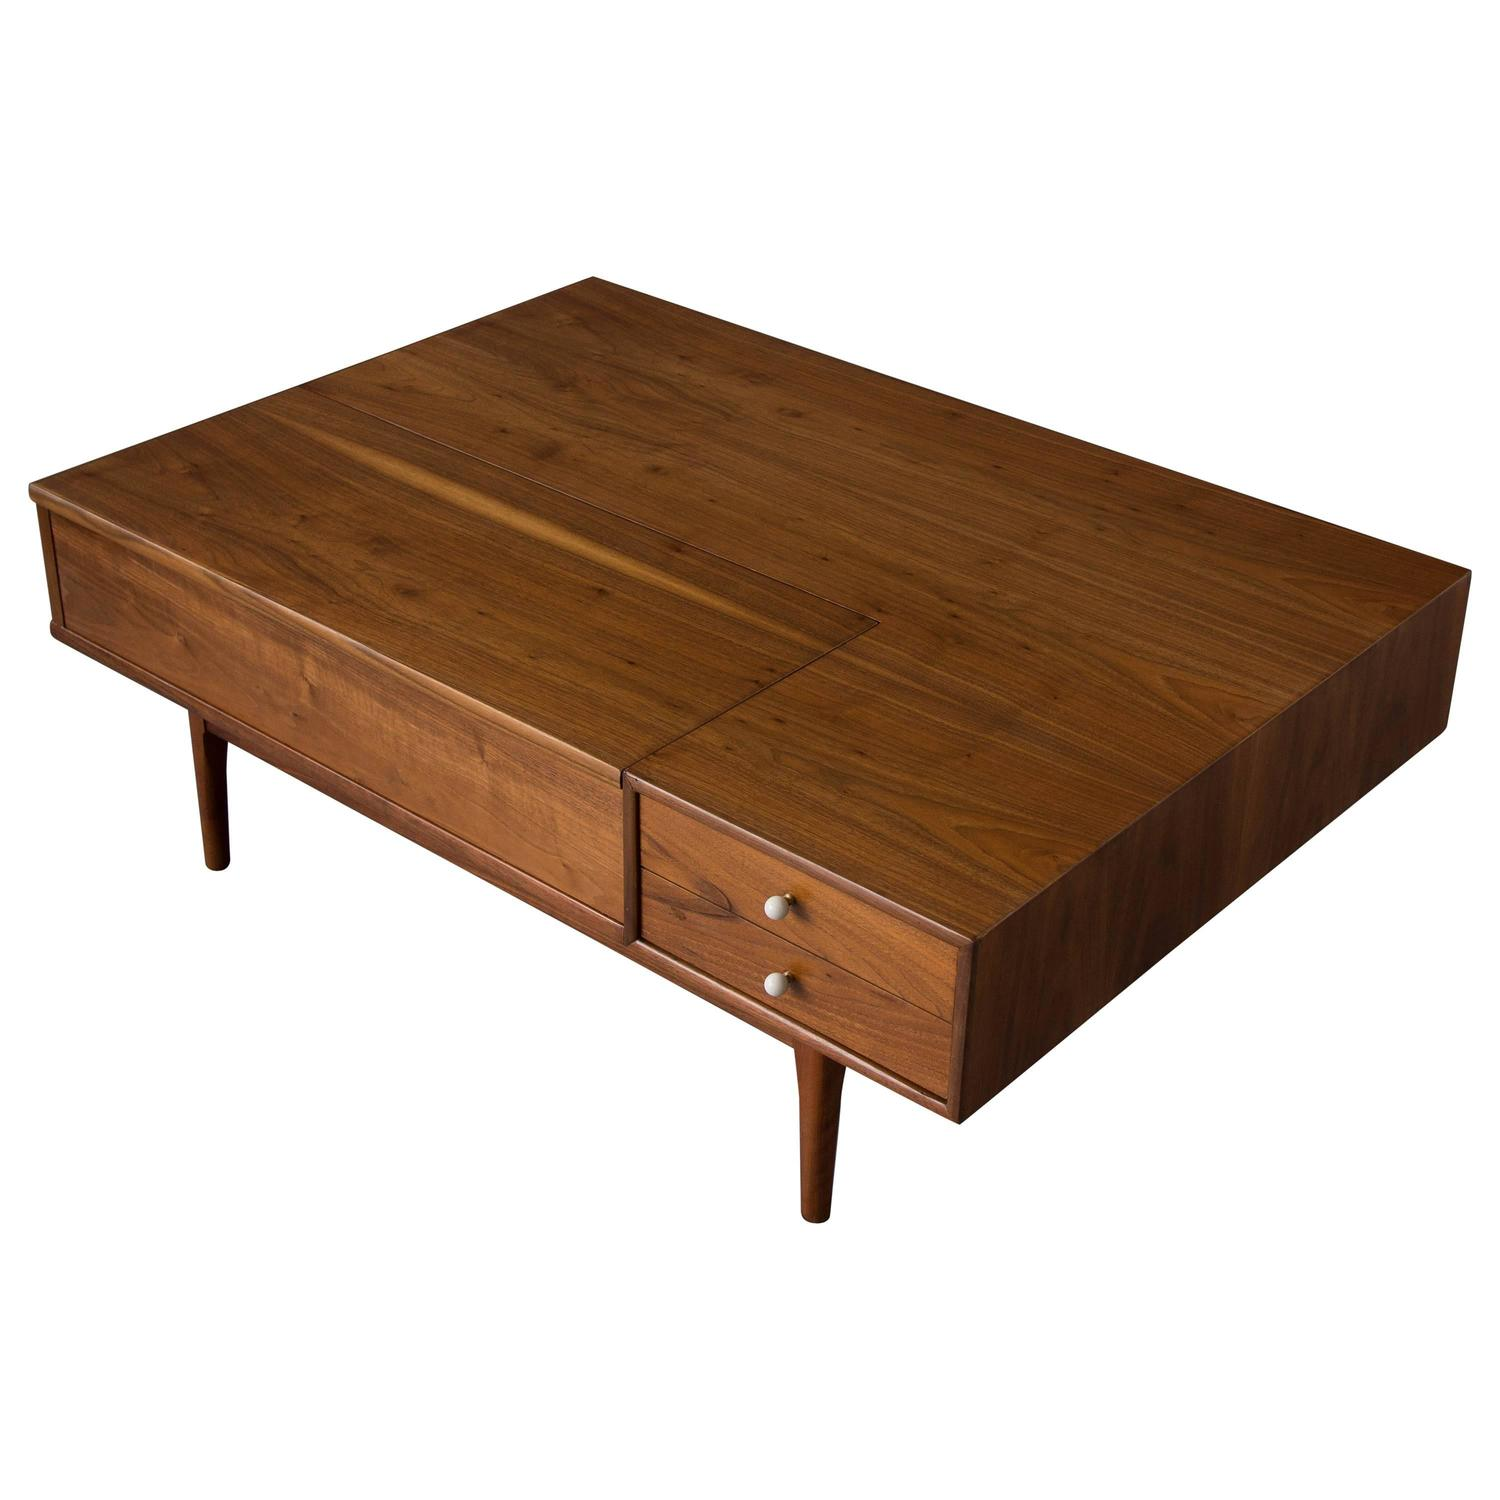 Kipp Stewart For Drexel Declaration Coffee Table For Sale At 1stdibs